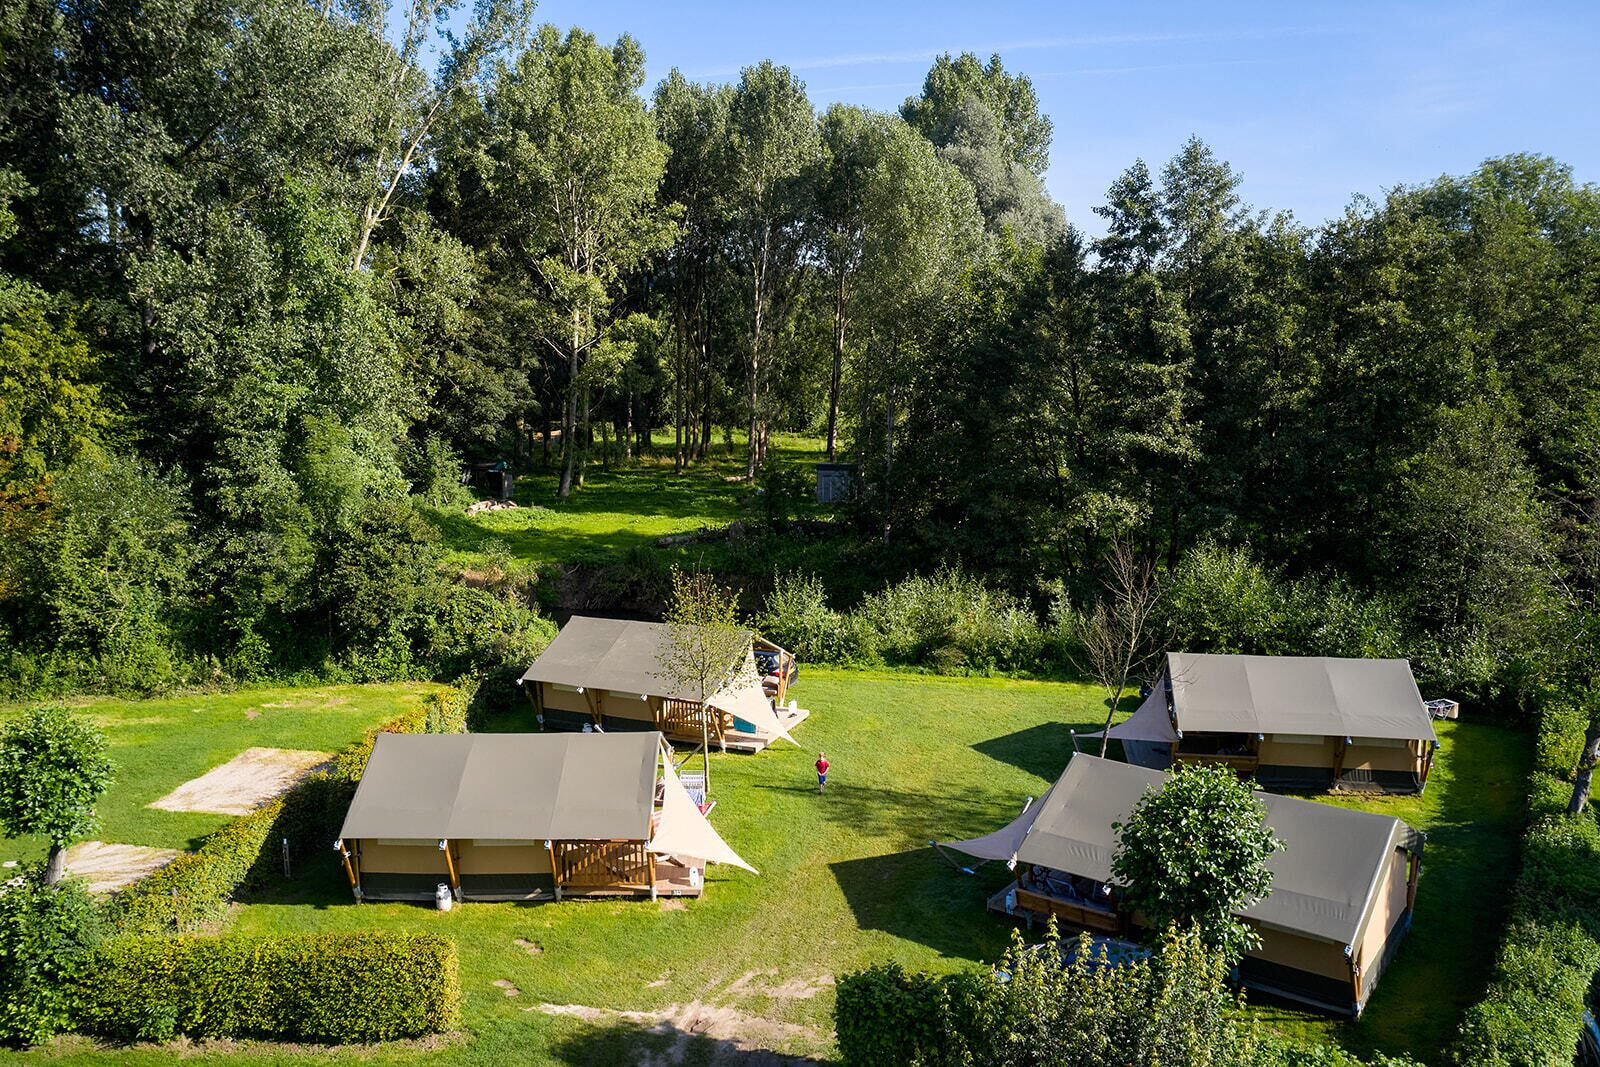 Camping 't Geuldal | Villatent Compact | 2 pers.